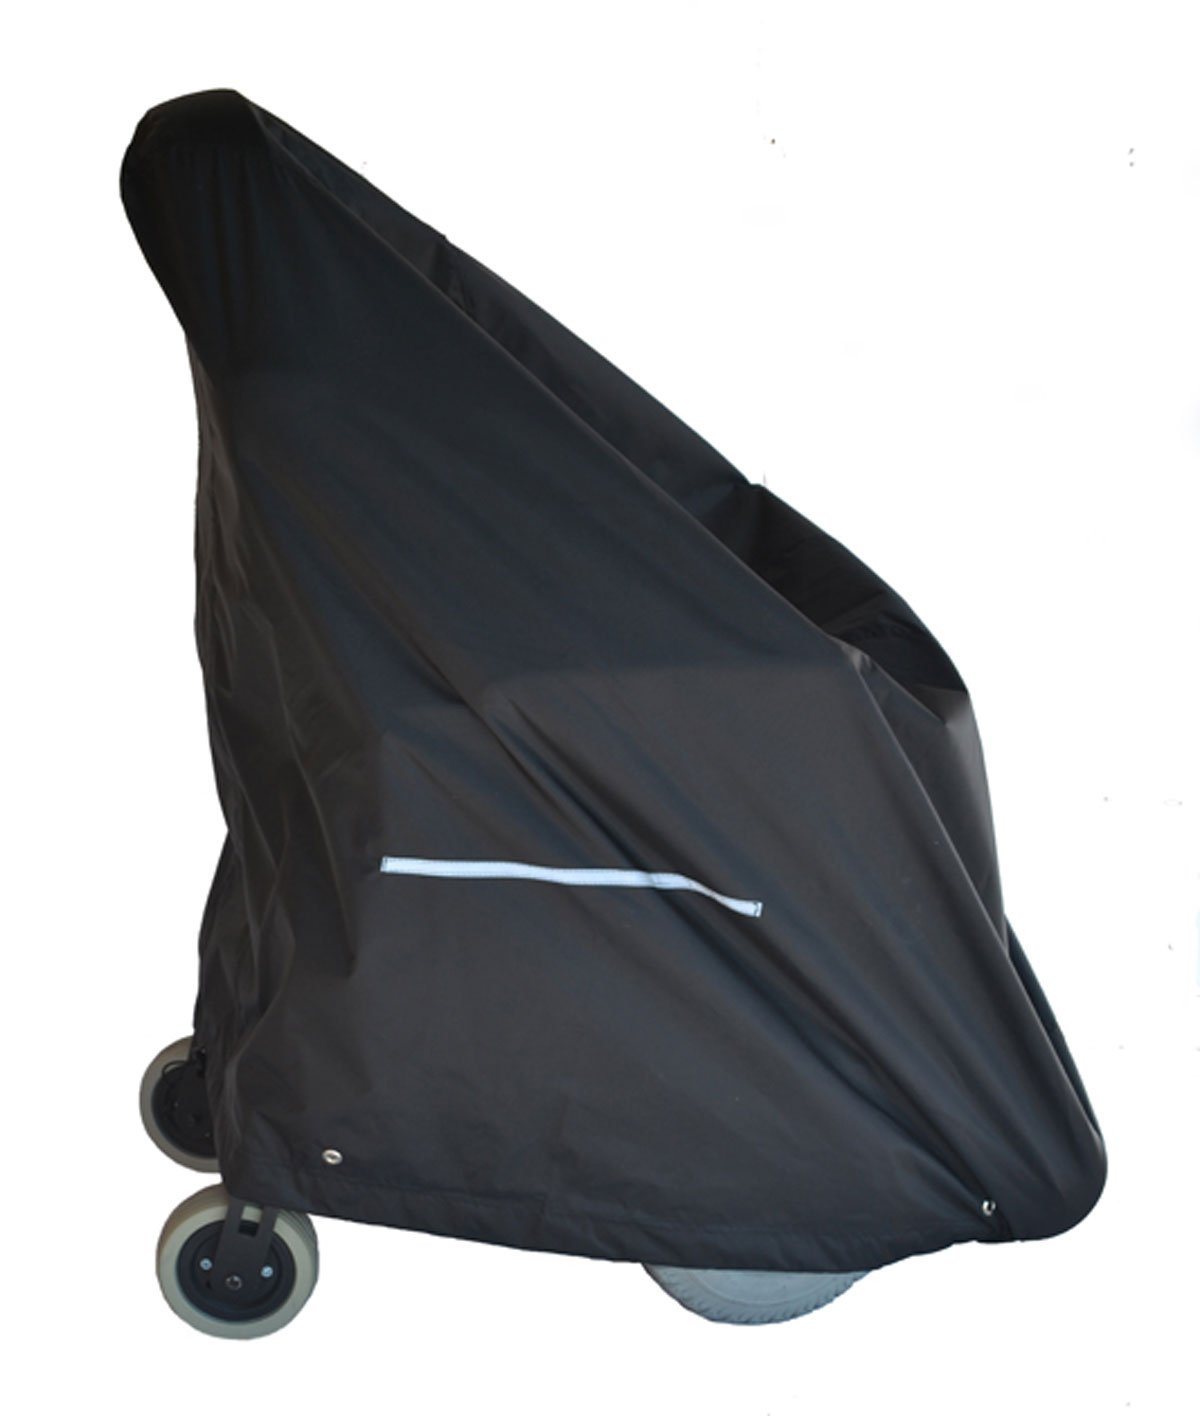 Powerchair Cover, Standard - Super Size Cover, 1 each